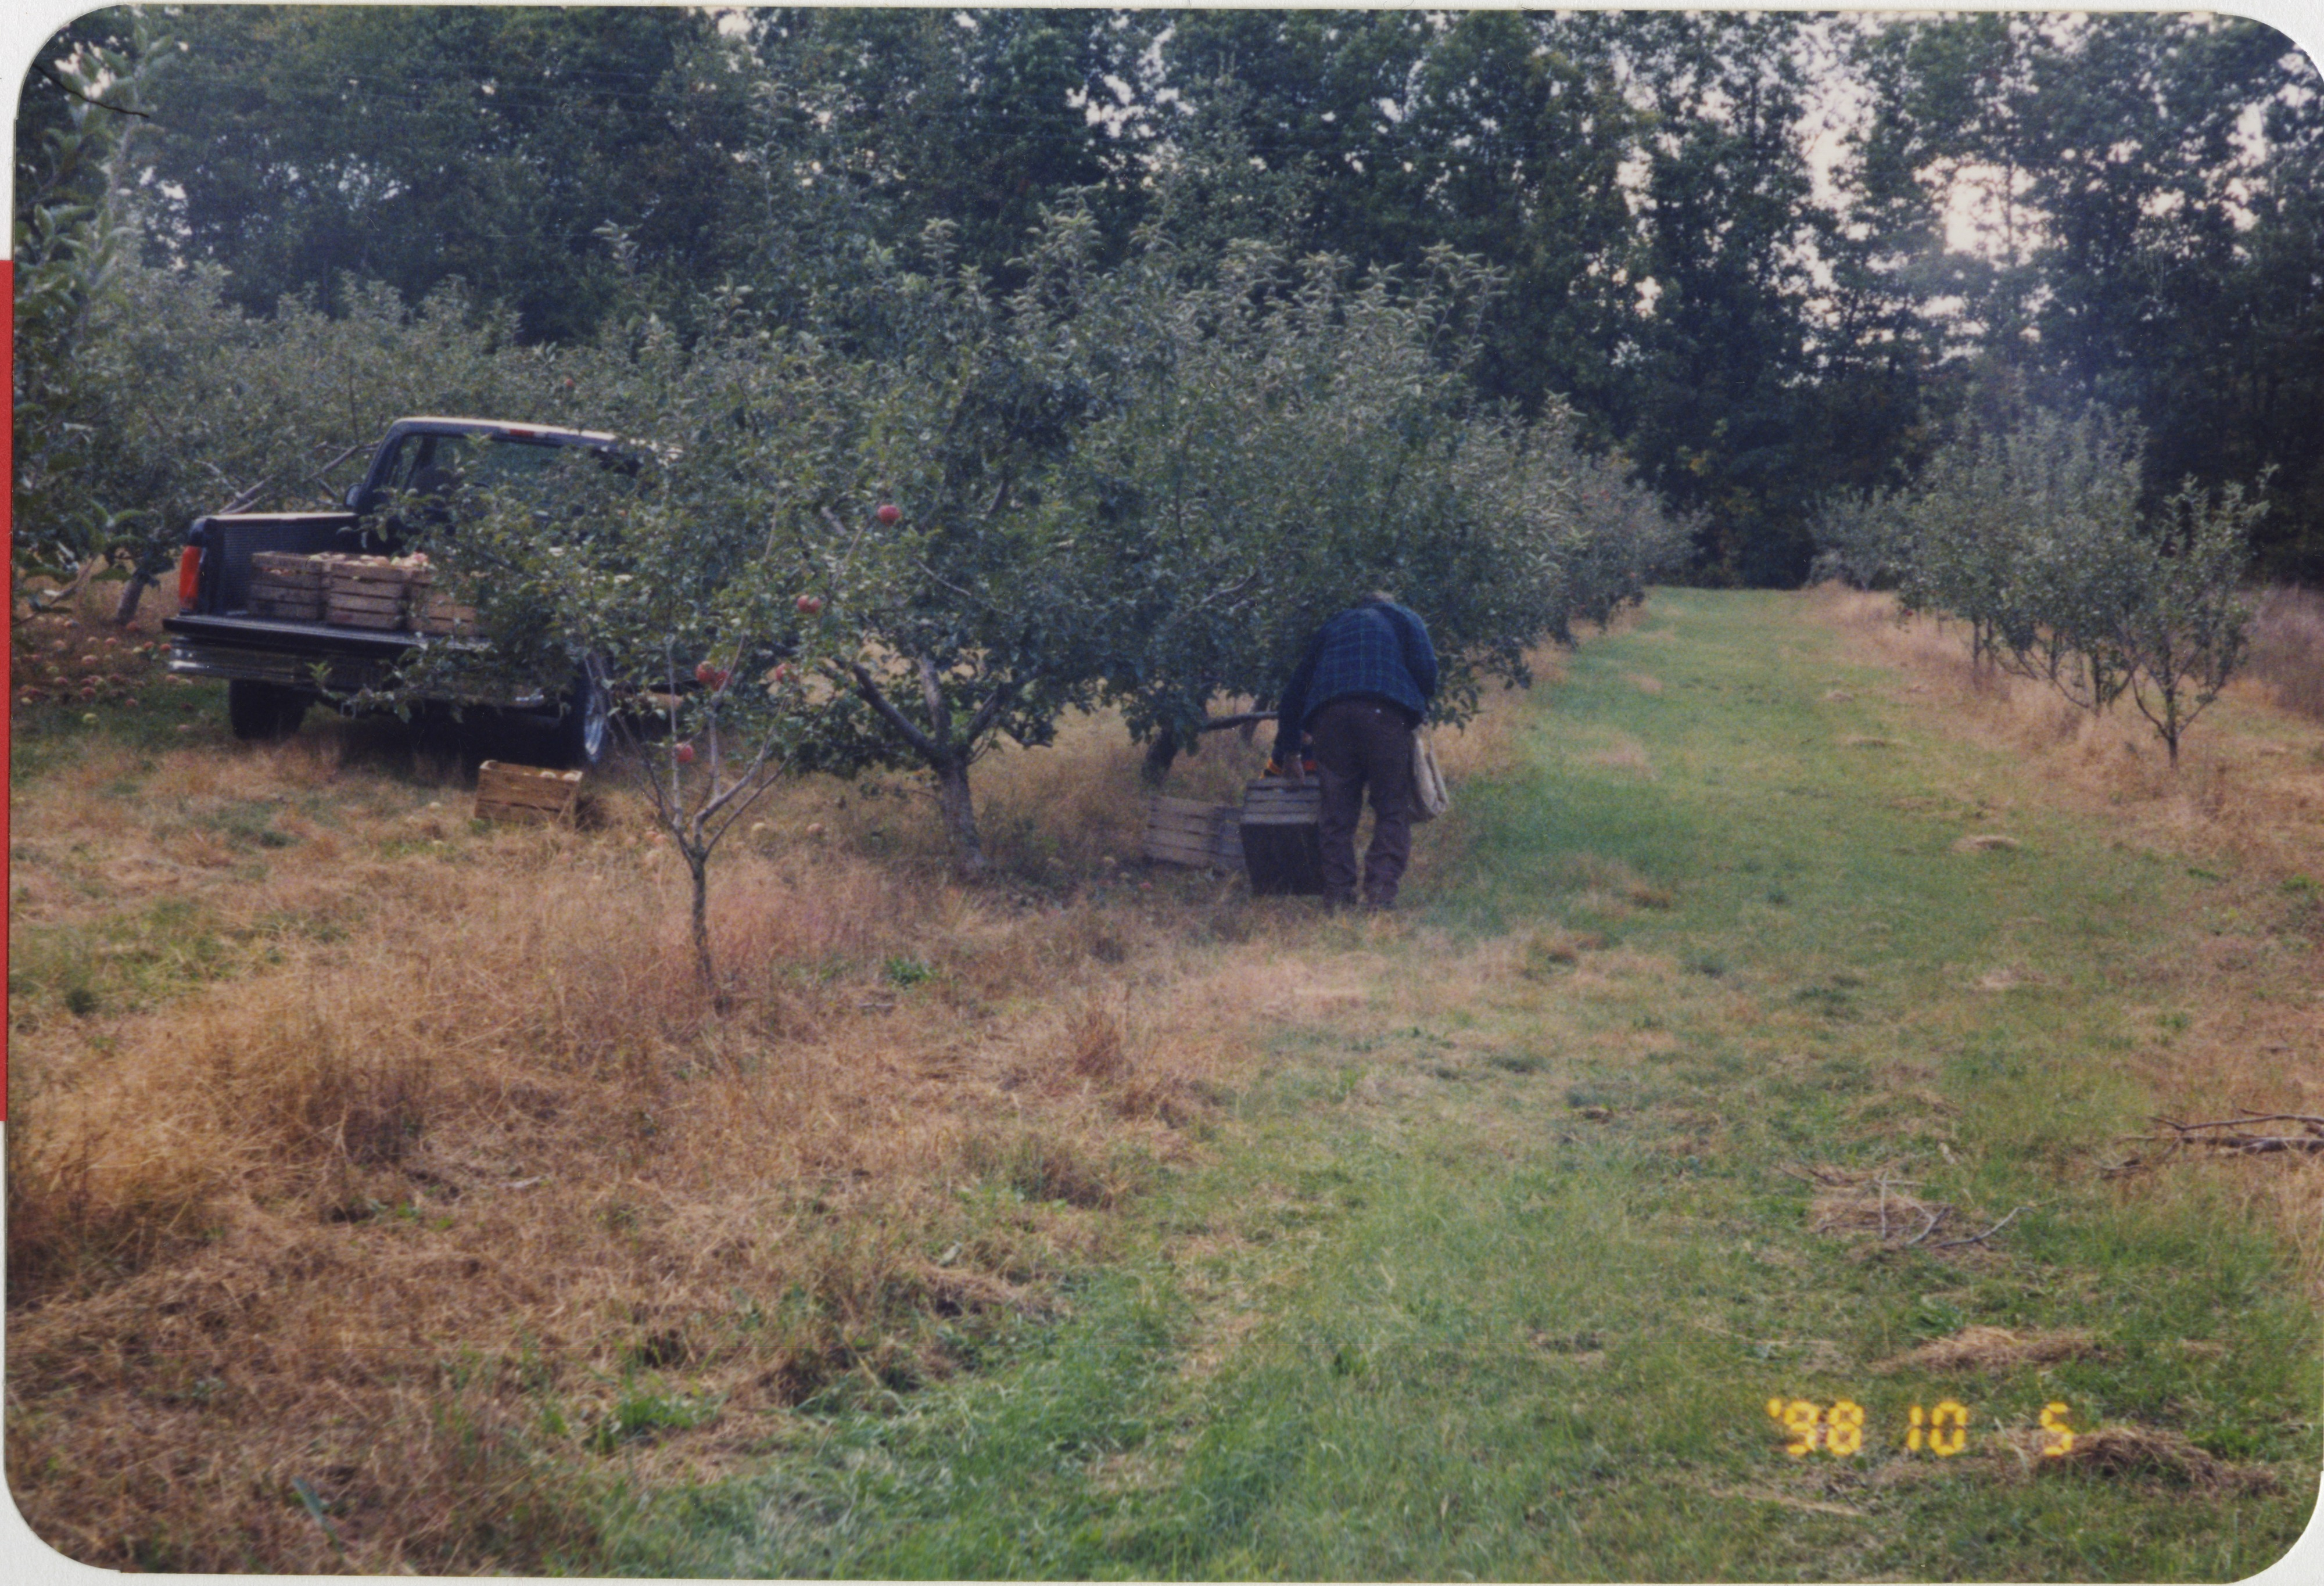 Harvest Time at Nemeth Orchards, 1998 image